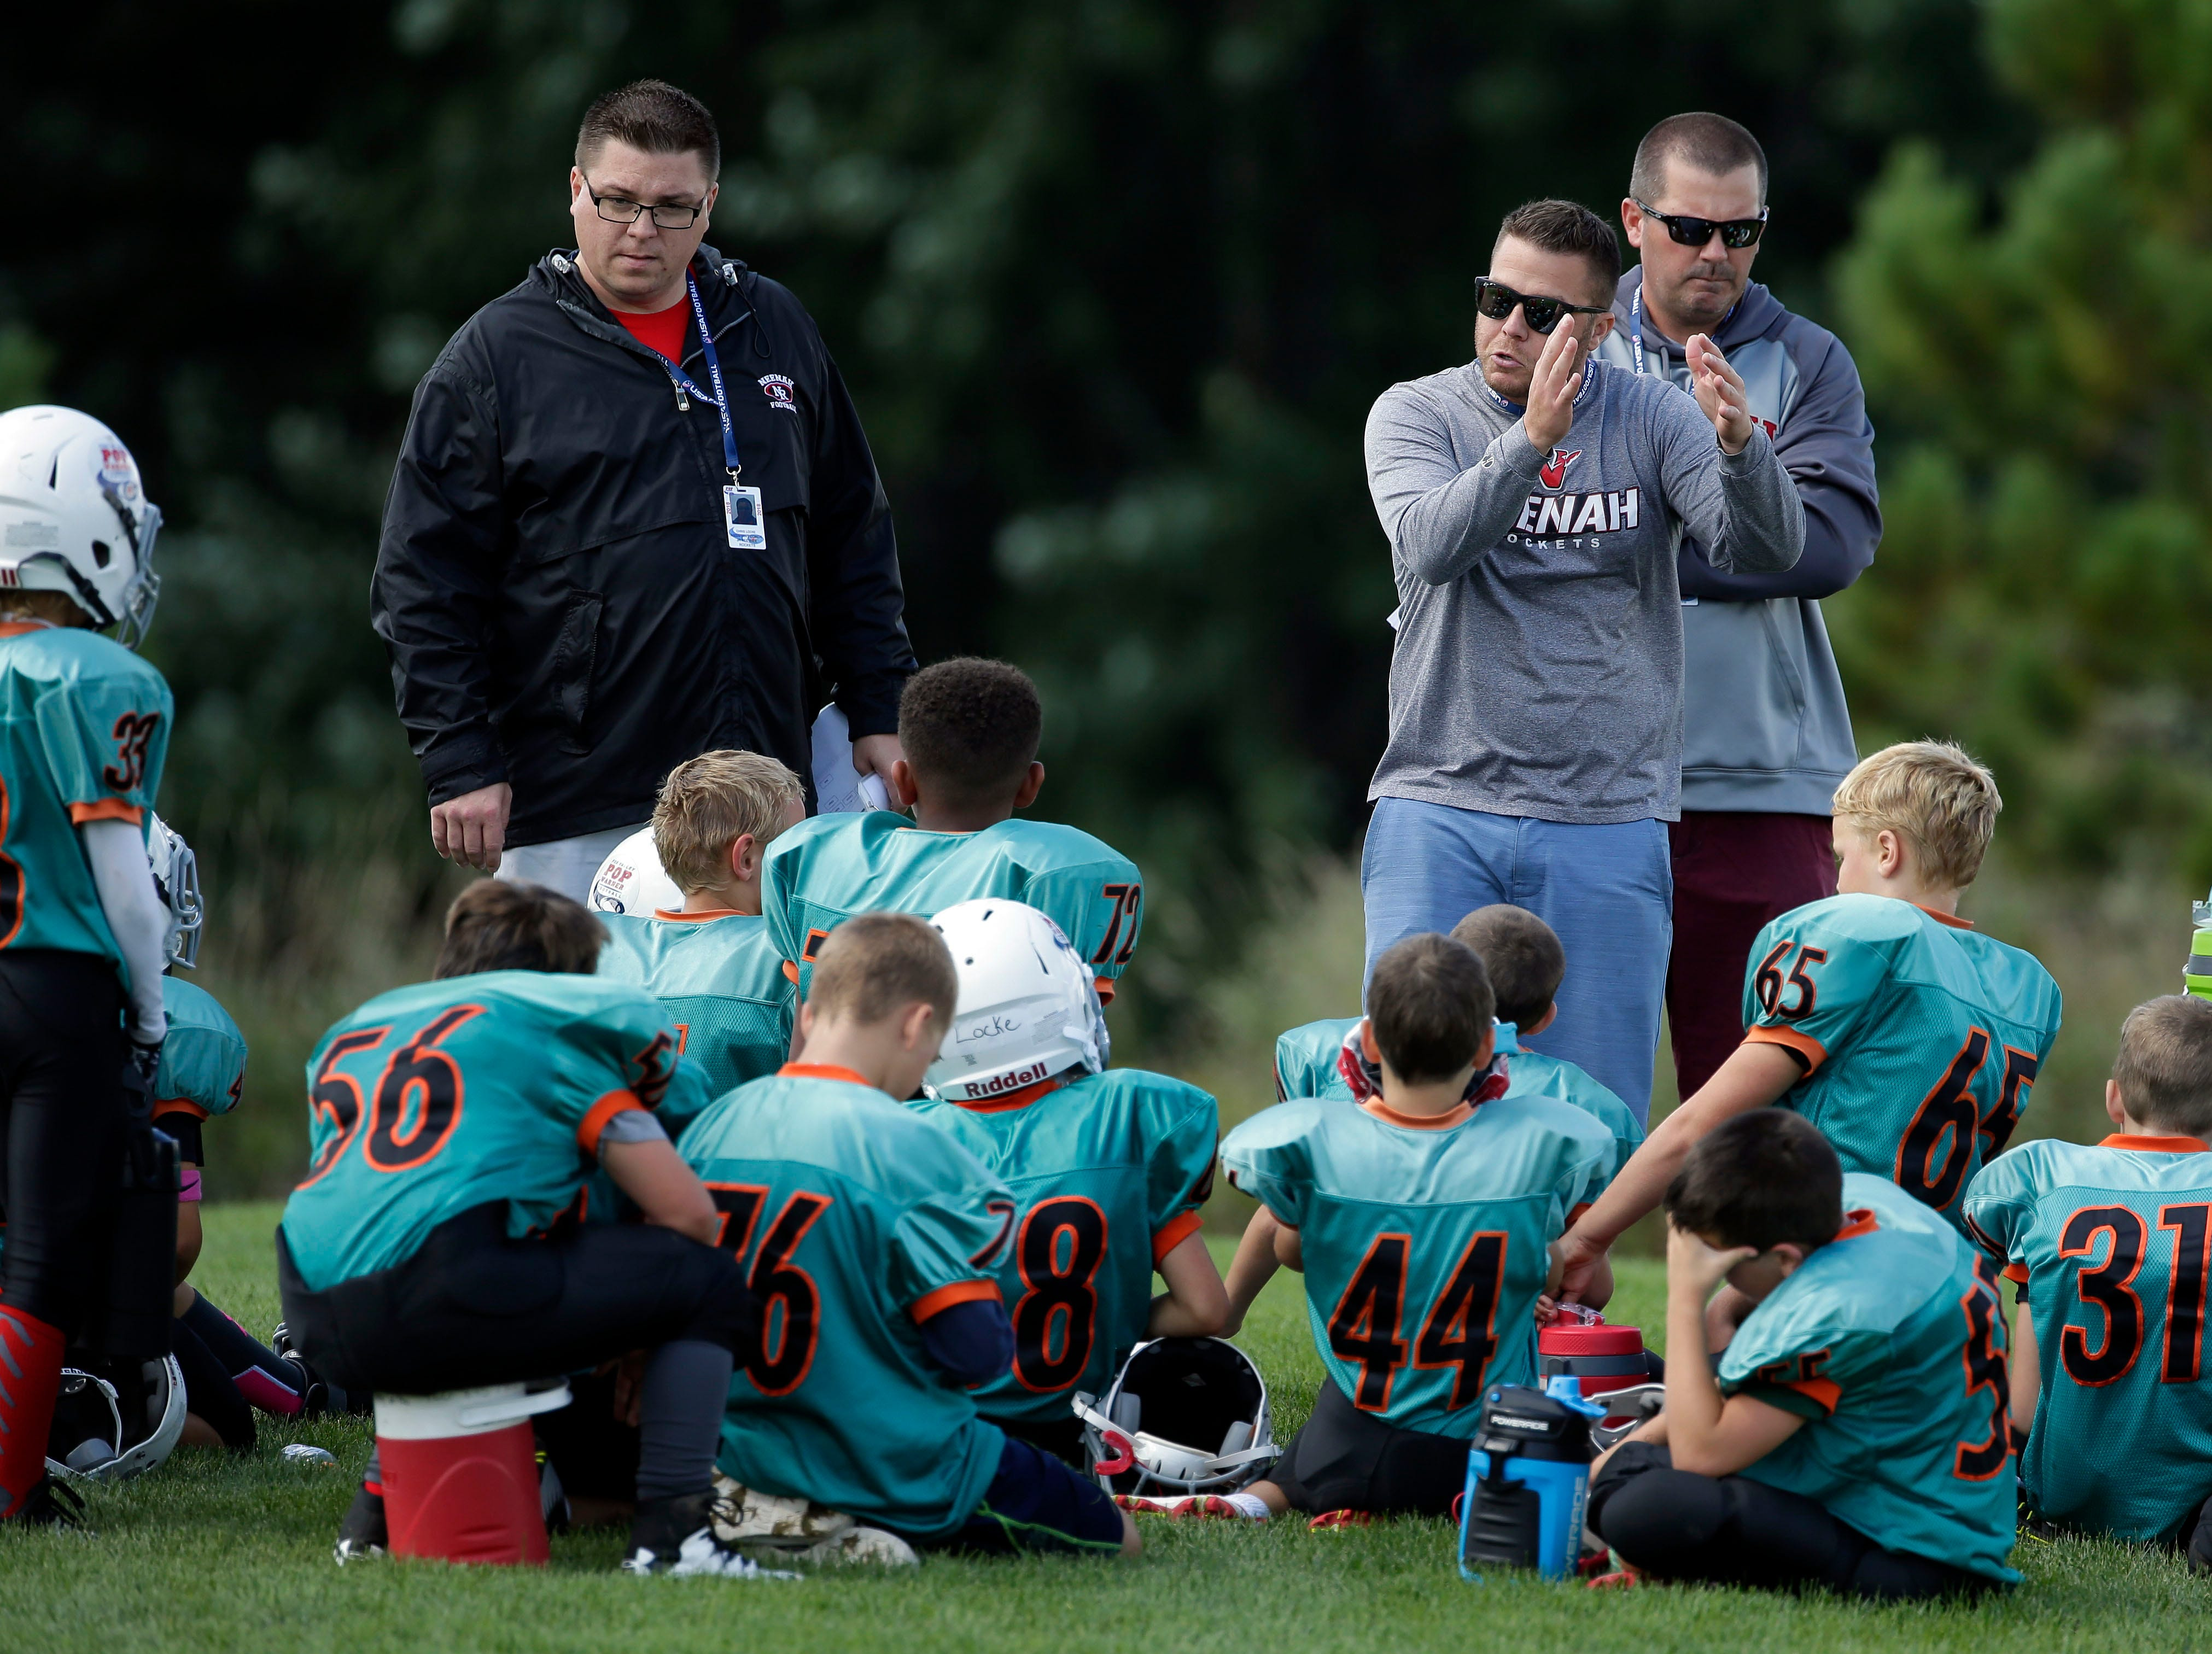 Coaches get a few minutes during the half to talk with their team as Fox Valley Pop Warner Football opens the season Saturday, September 8, 2018, at Plamann Park in Grand Chute, Wis.